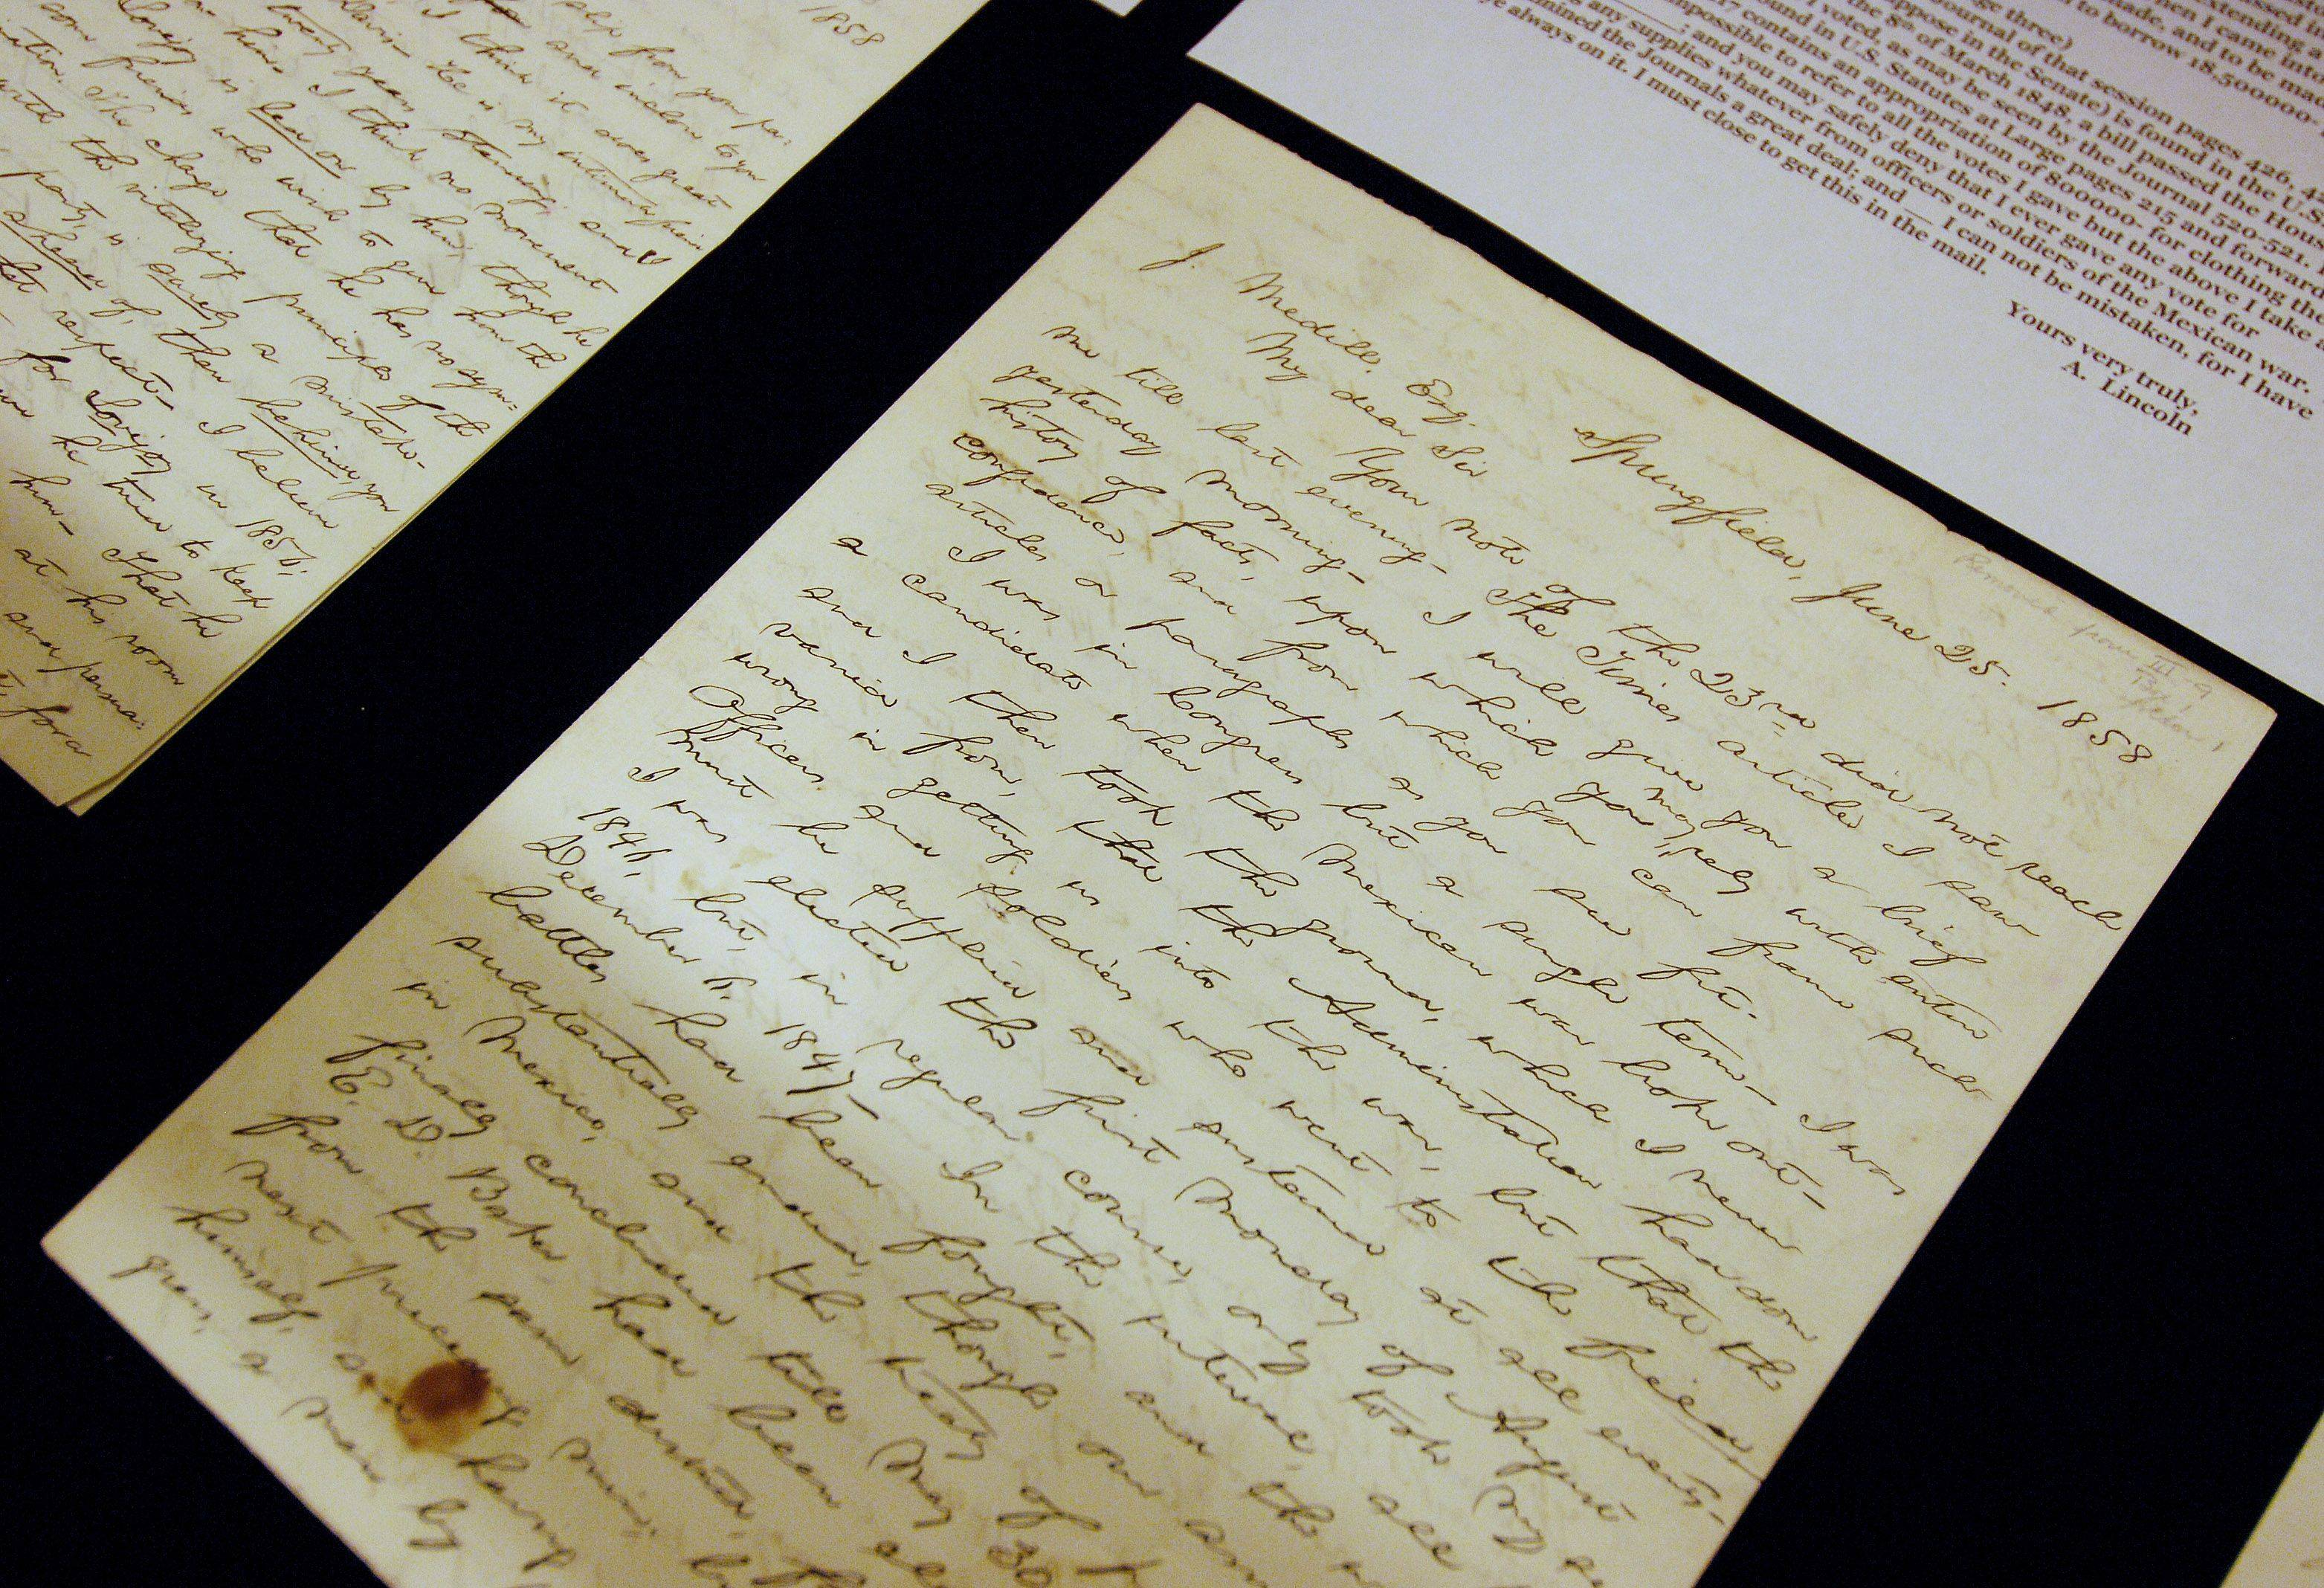 The Colonel Robert R. McCormick Research Center has original Abraham Lincoln letters on display in the reading room. The letters were written to Robert R. McCormick's grandfather, Joseph Medill, who ran the Chicago Tribune in the 1850s and was a supporter of Abraham Lincoln.